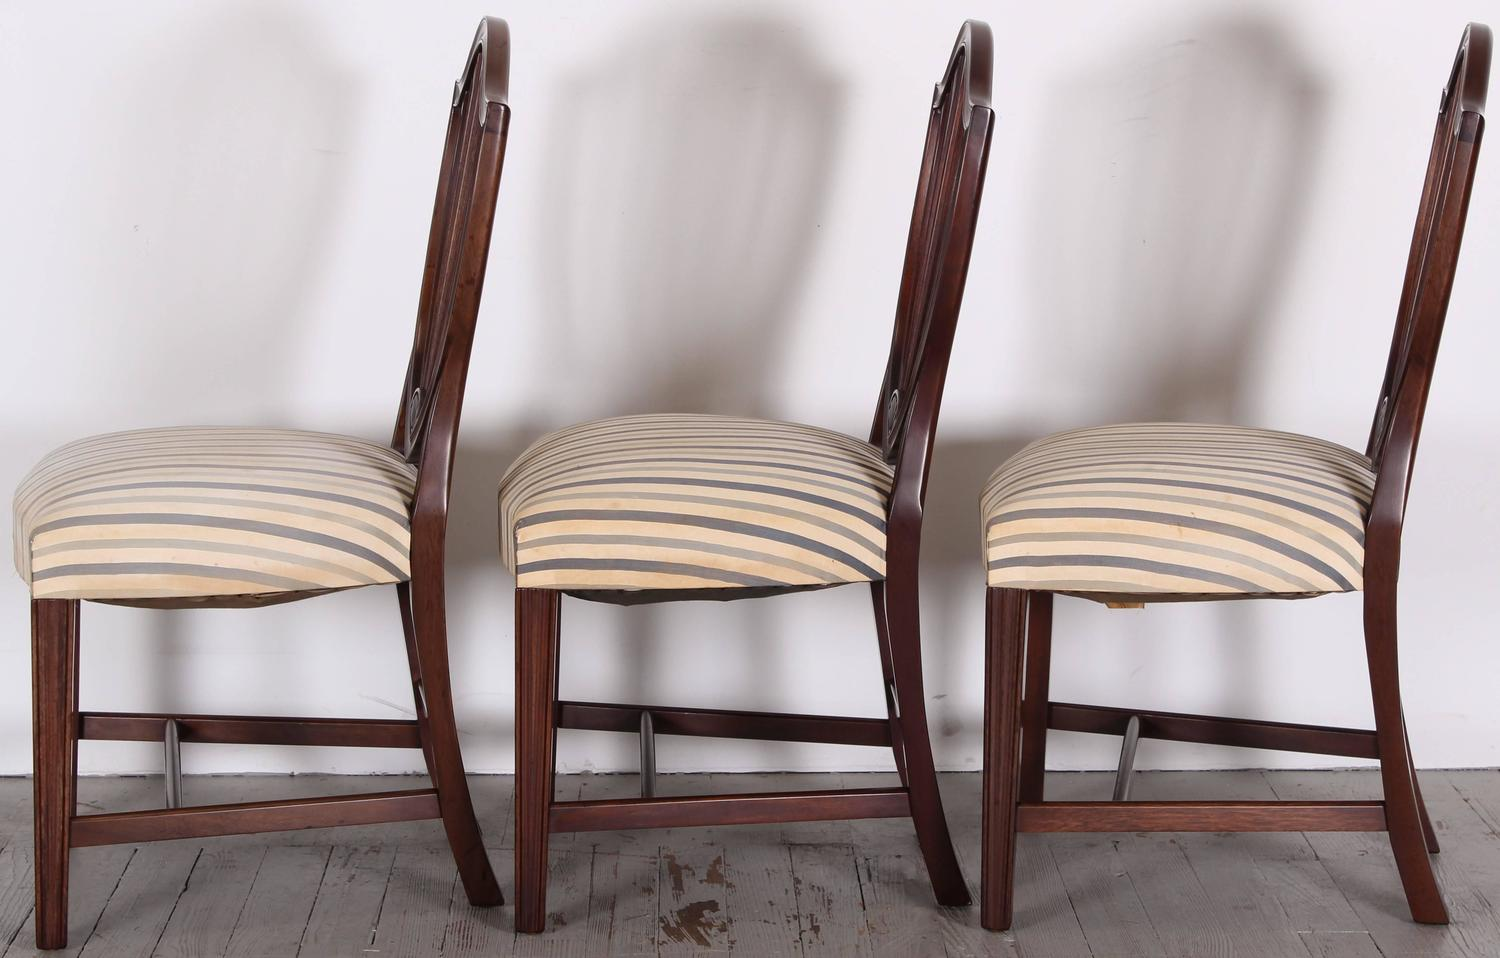 Biggs Dining Room Chairs